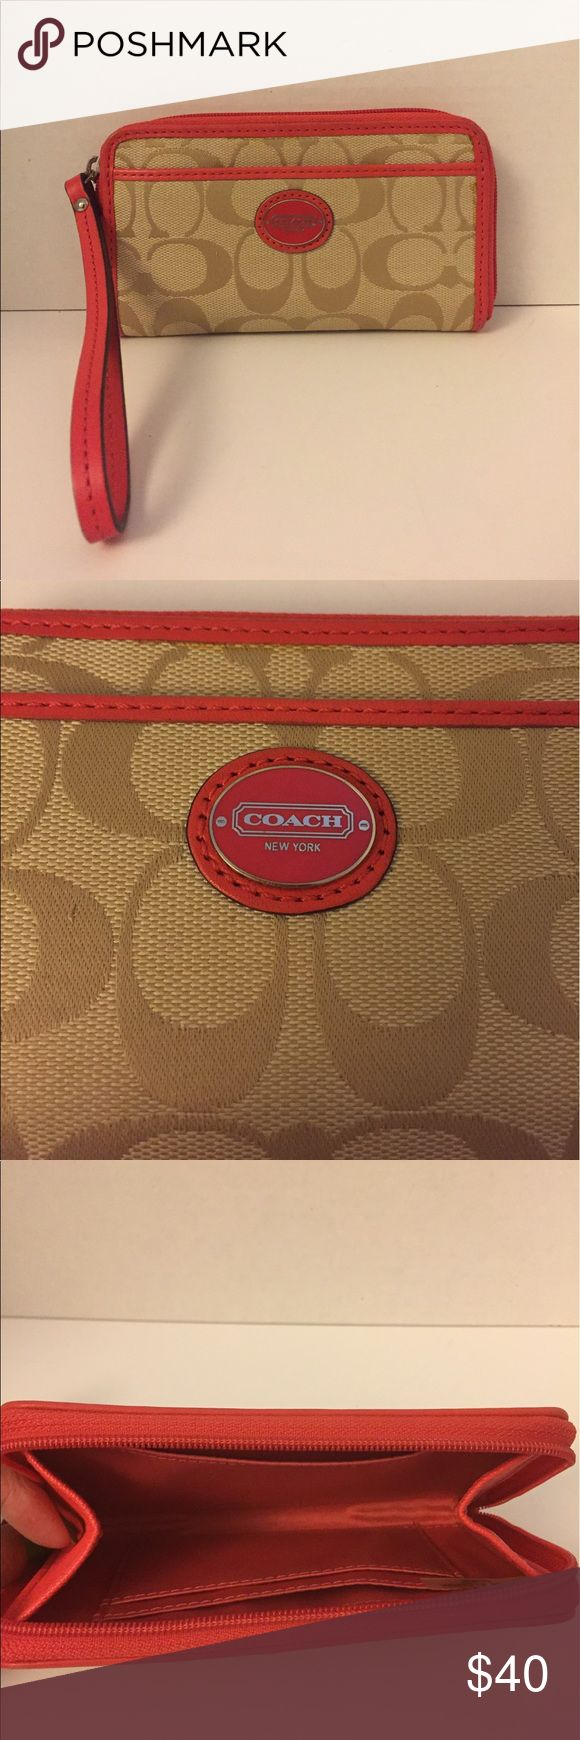 Coach Legacy Mini Tanner Phone Wrislet Coach Legacy Mini Tanner Phone Wristlet.  Gently Used - Does Have Some Dirt on the Corners (See Pictures).  Holds my iPhone 6.  Pocket on the outside and 2 Credit Card Slots on the Inside plus and additional Pocket also on the Inside.   Comes from a Smoke Free/Pet Free Home. Coach Bags Clutches & Wristlets